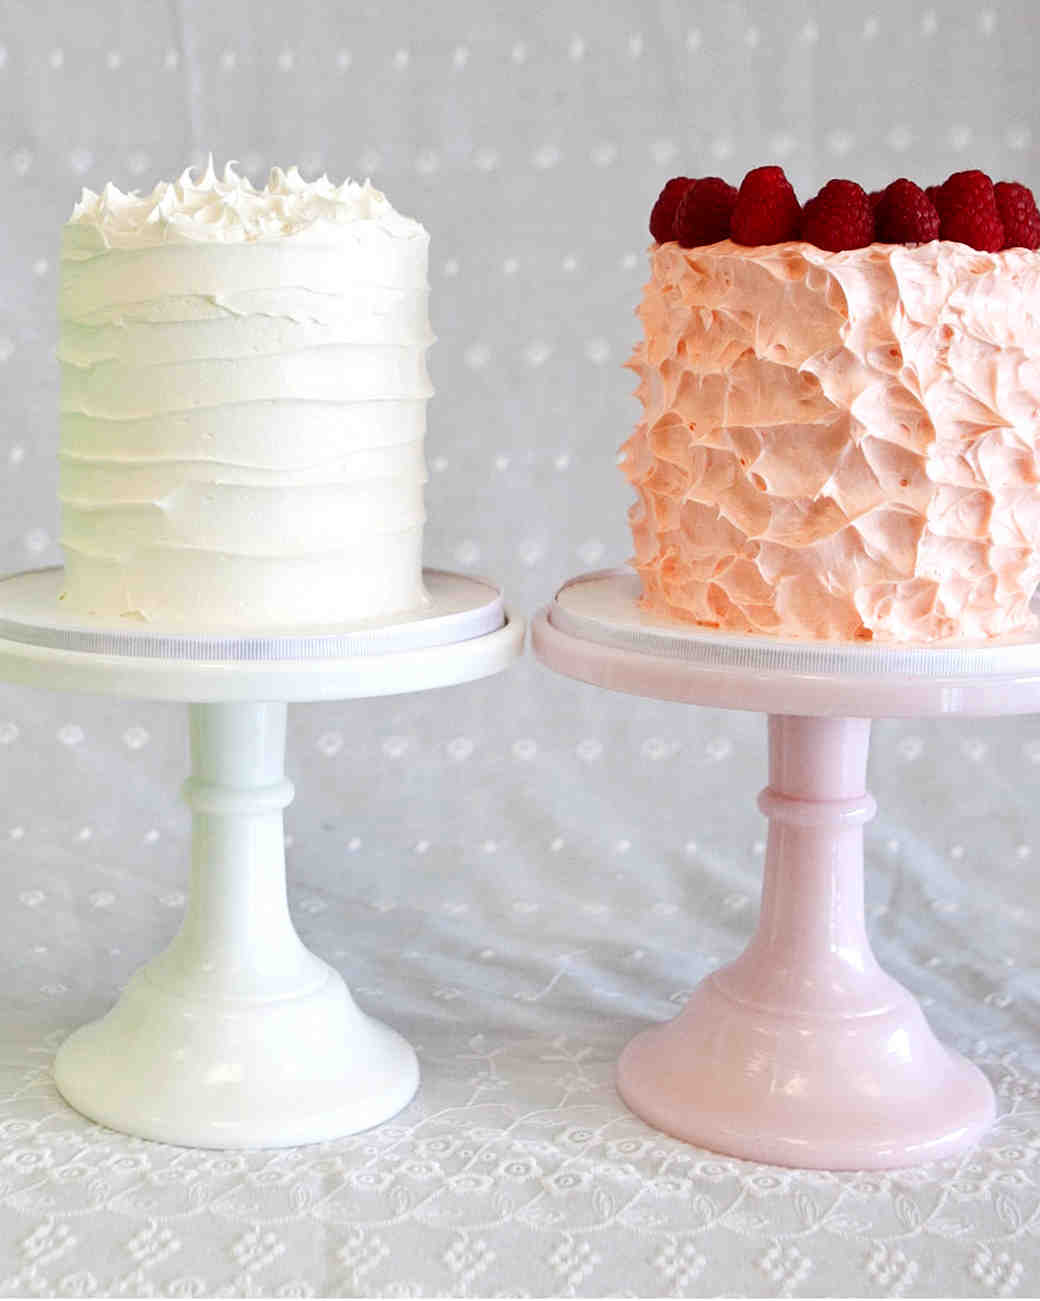 learn-the-lingo-frosting-meringue-confectioneiress-0814.jpg